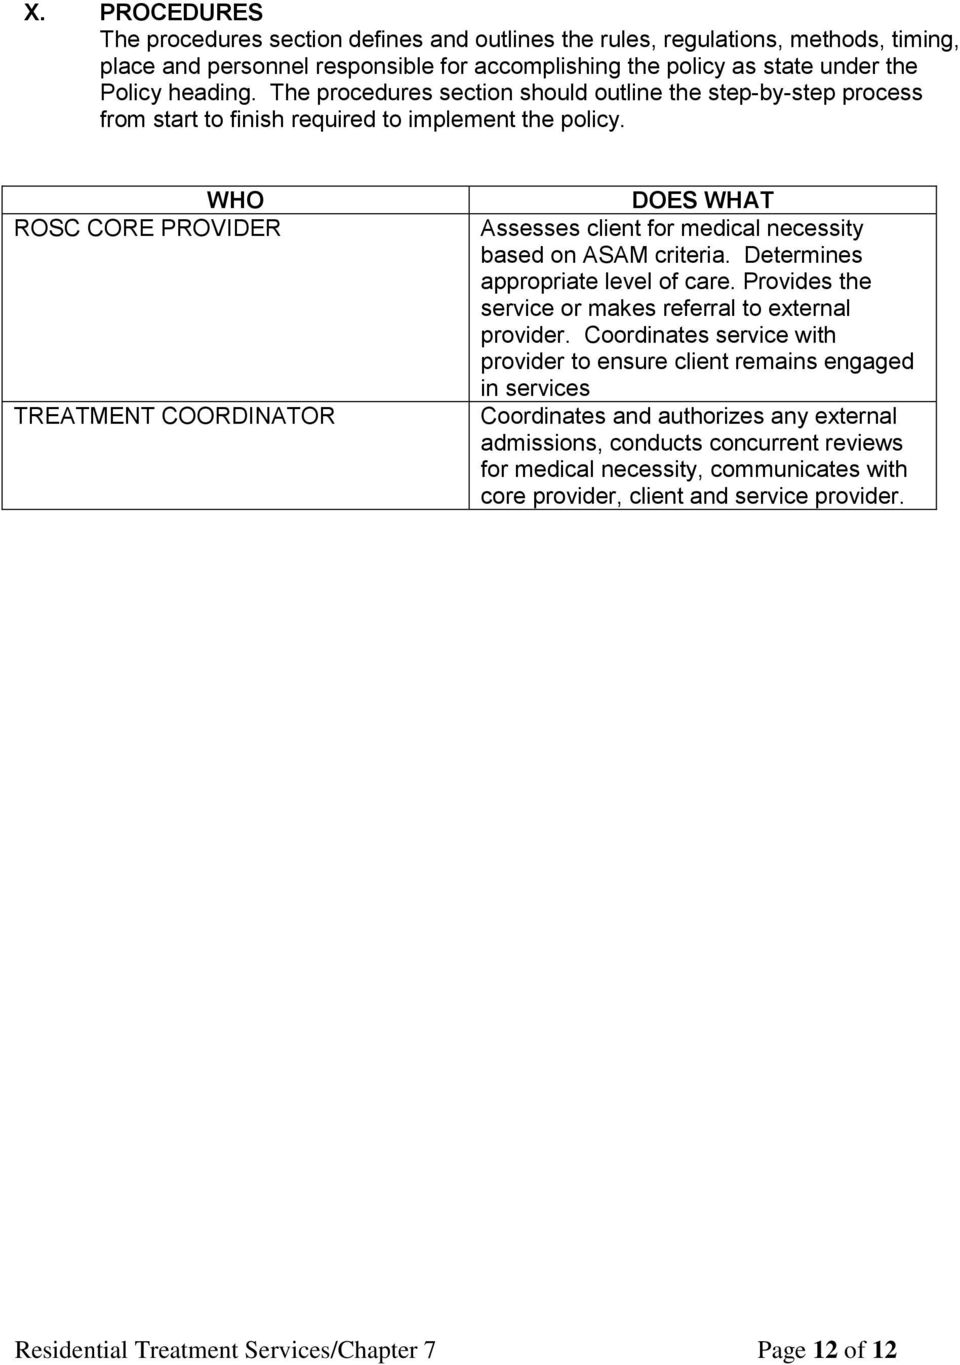 WHO ROSC CORE PROVIDER TREATMENT COORDINATOR DOES WHAT Assesses client for medical necessity based on ASAM criteria. Determines appropriate level of care.